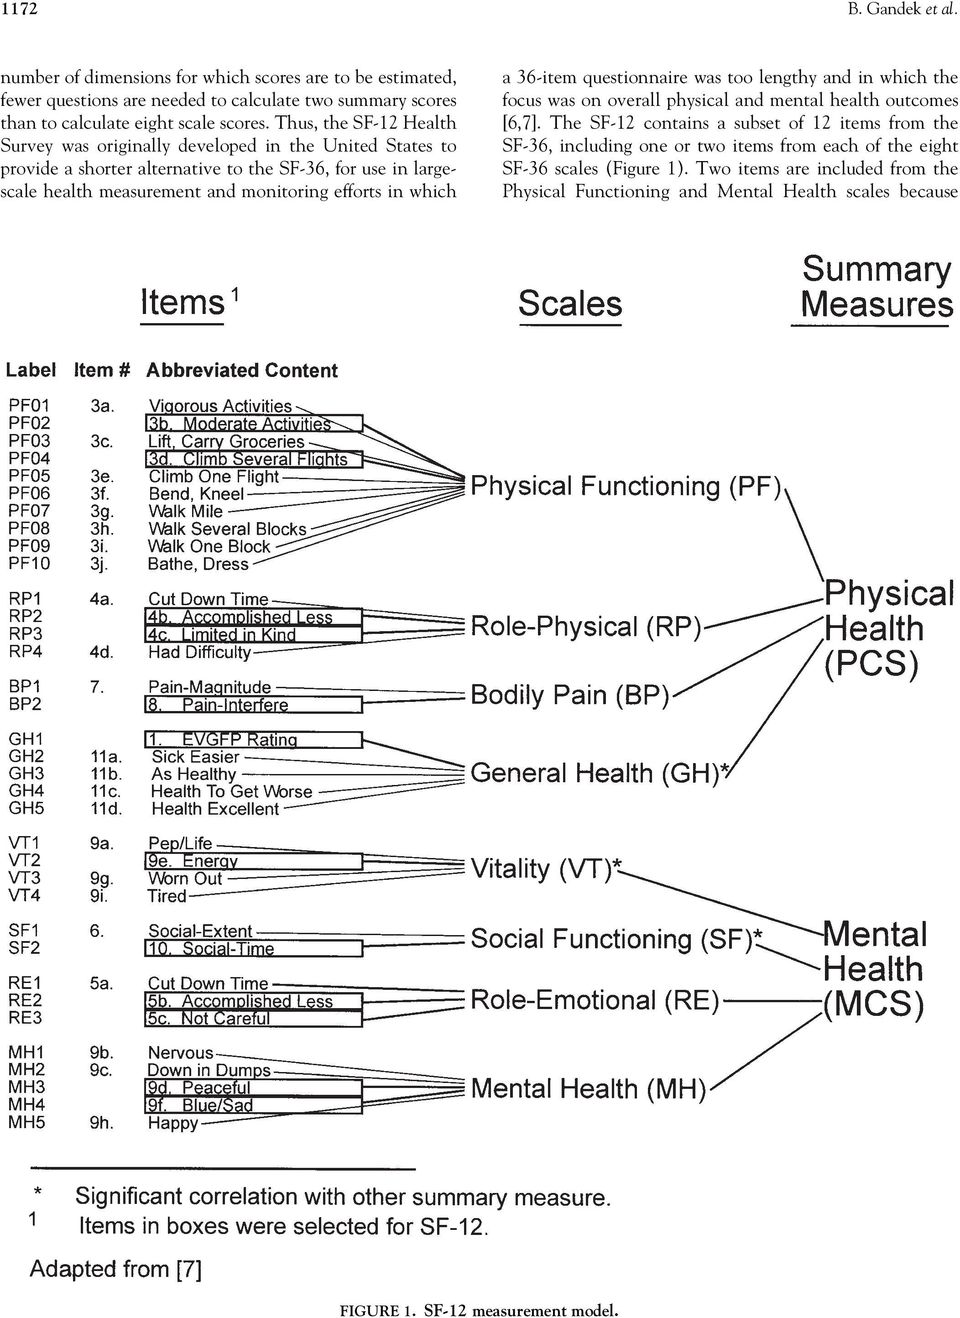 in which a 36-item questionnaire was too lengthy and in which the focus was on overall physical and mental health outcomes [6,7].